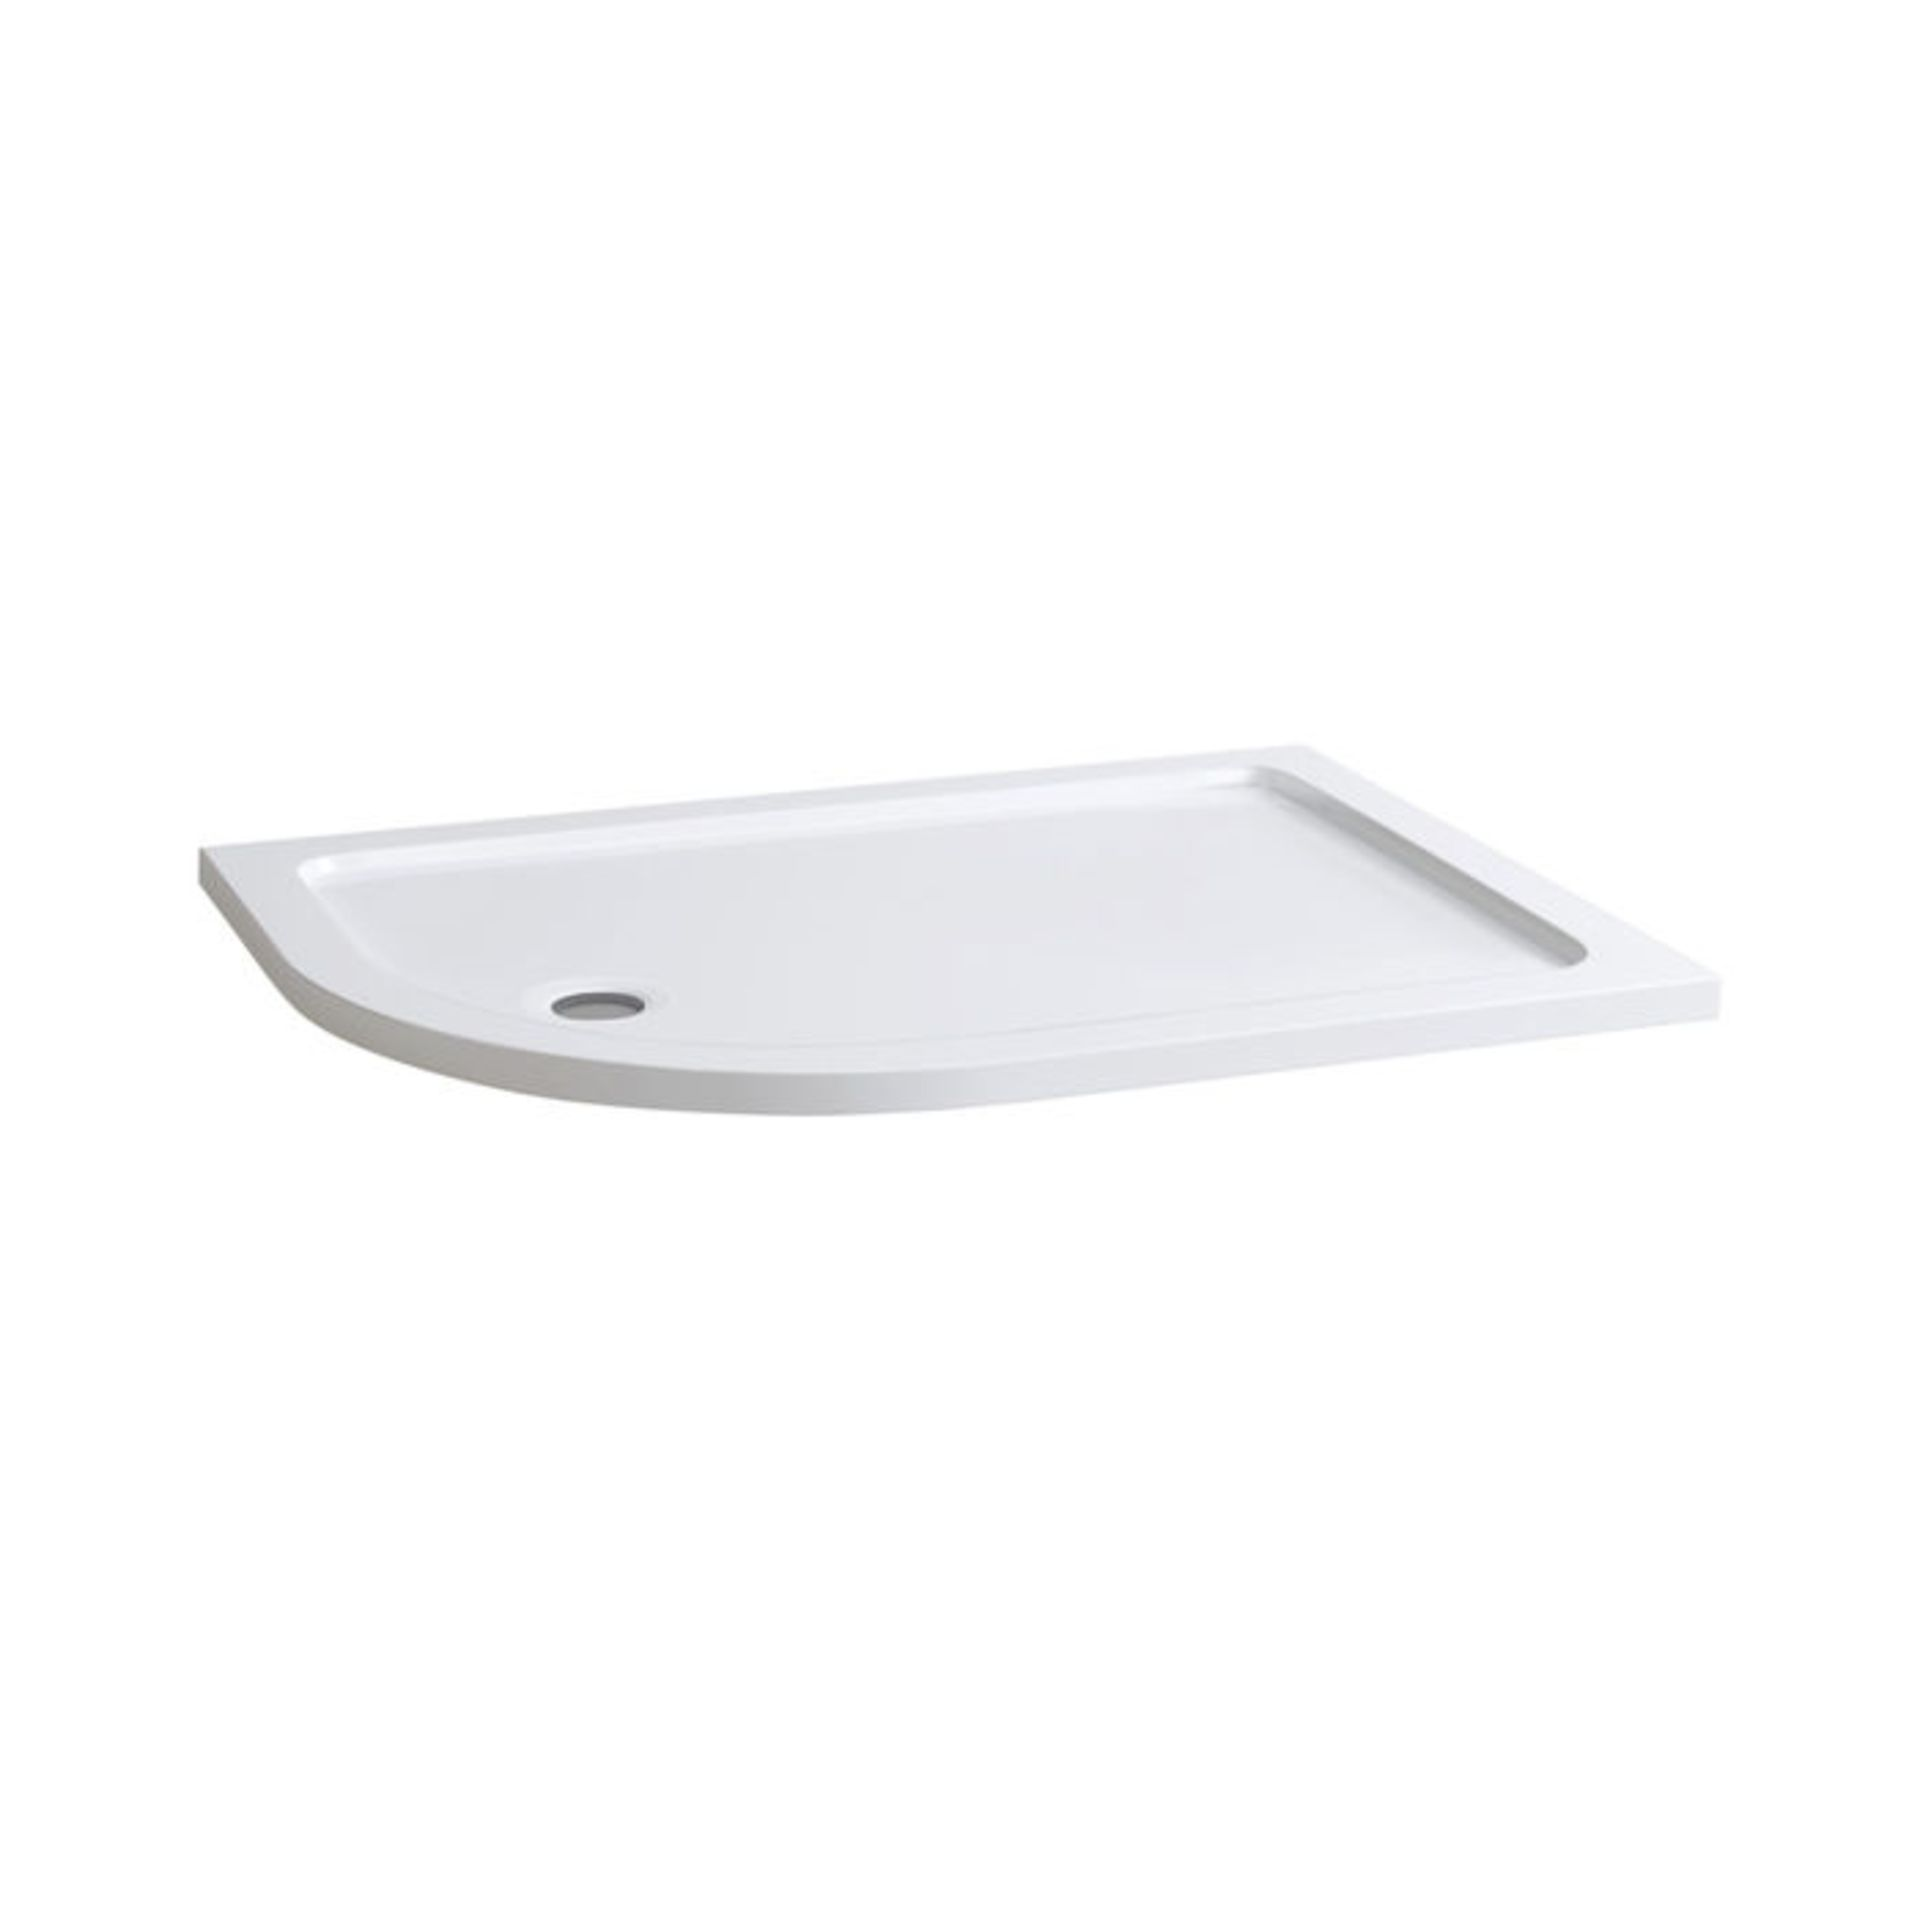 Lot 7 - (W119) 1200x900mm Offset Quadrant Ultra Slim Stone Shower Tray - Left. Low profile ultra slim design